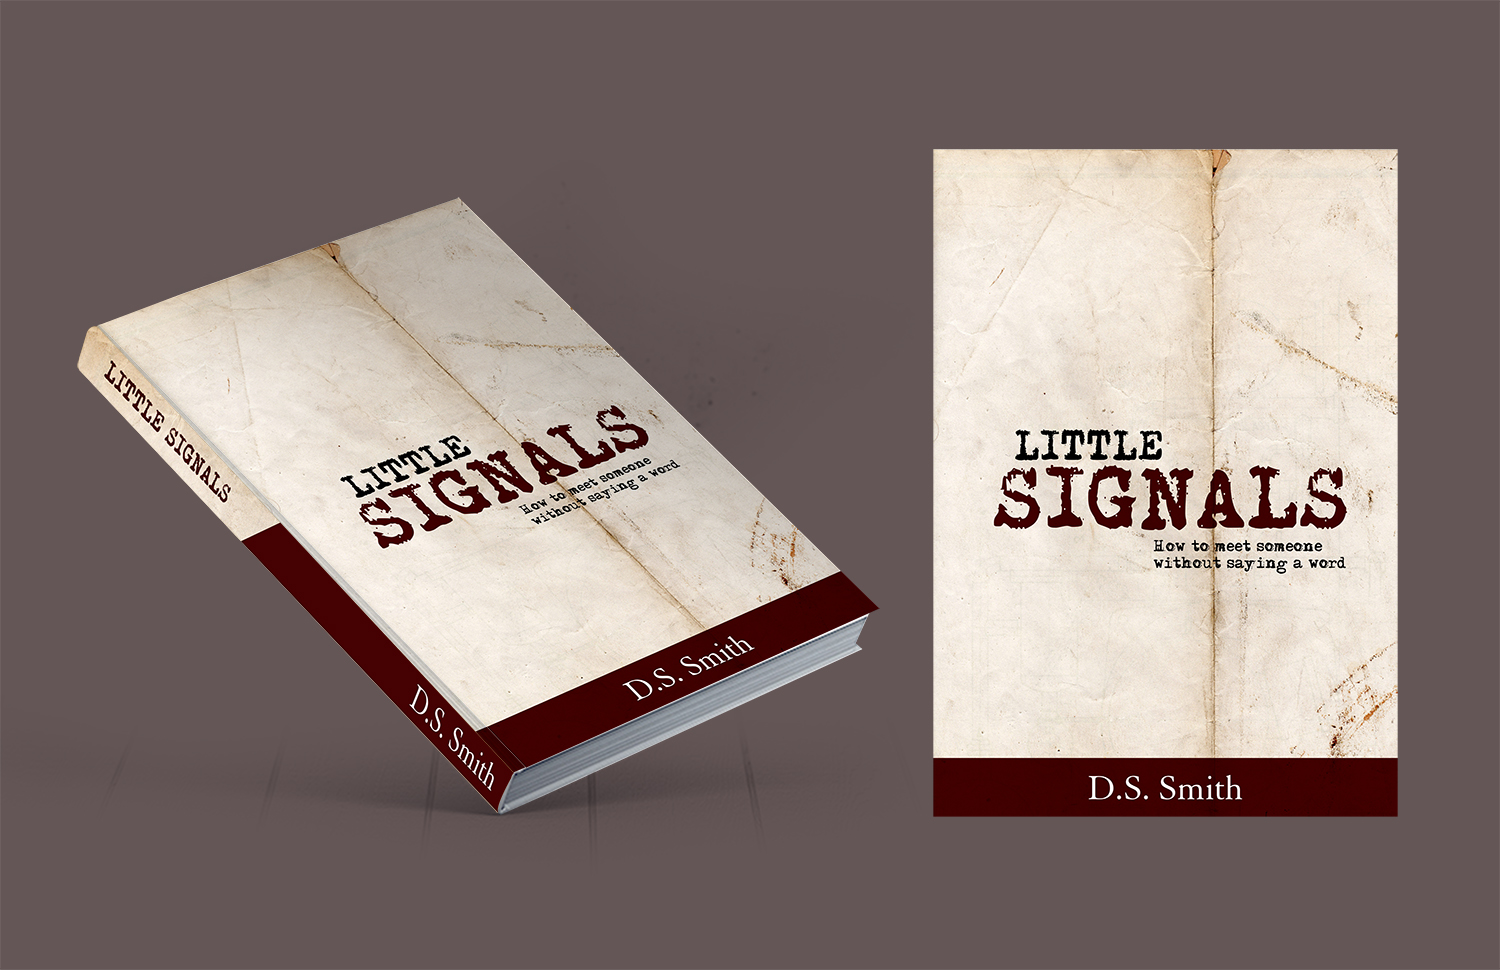 traditional conservative dating book cover design for a company by